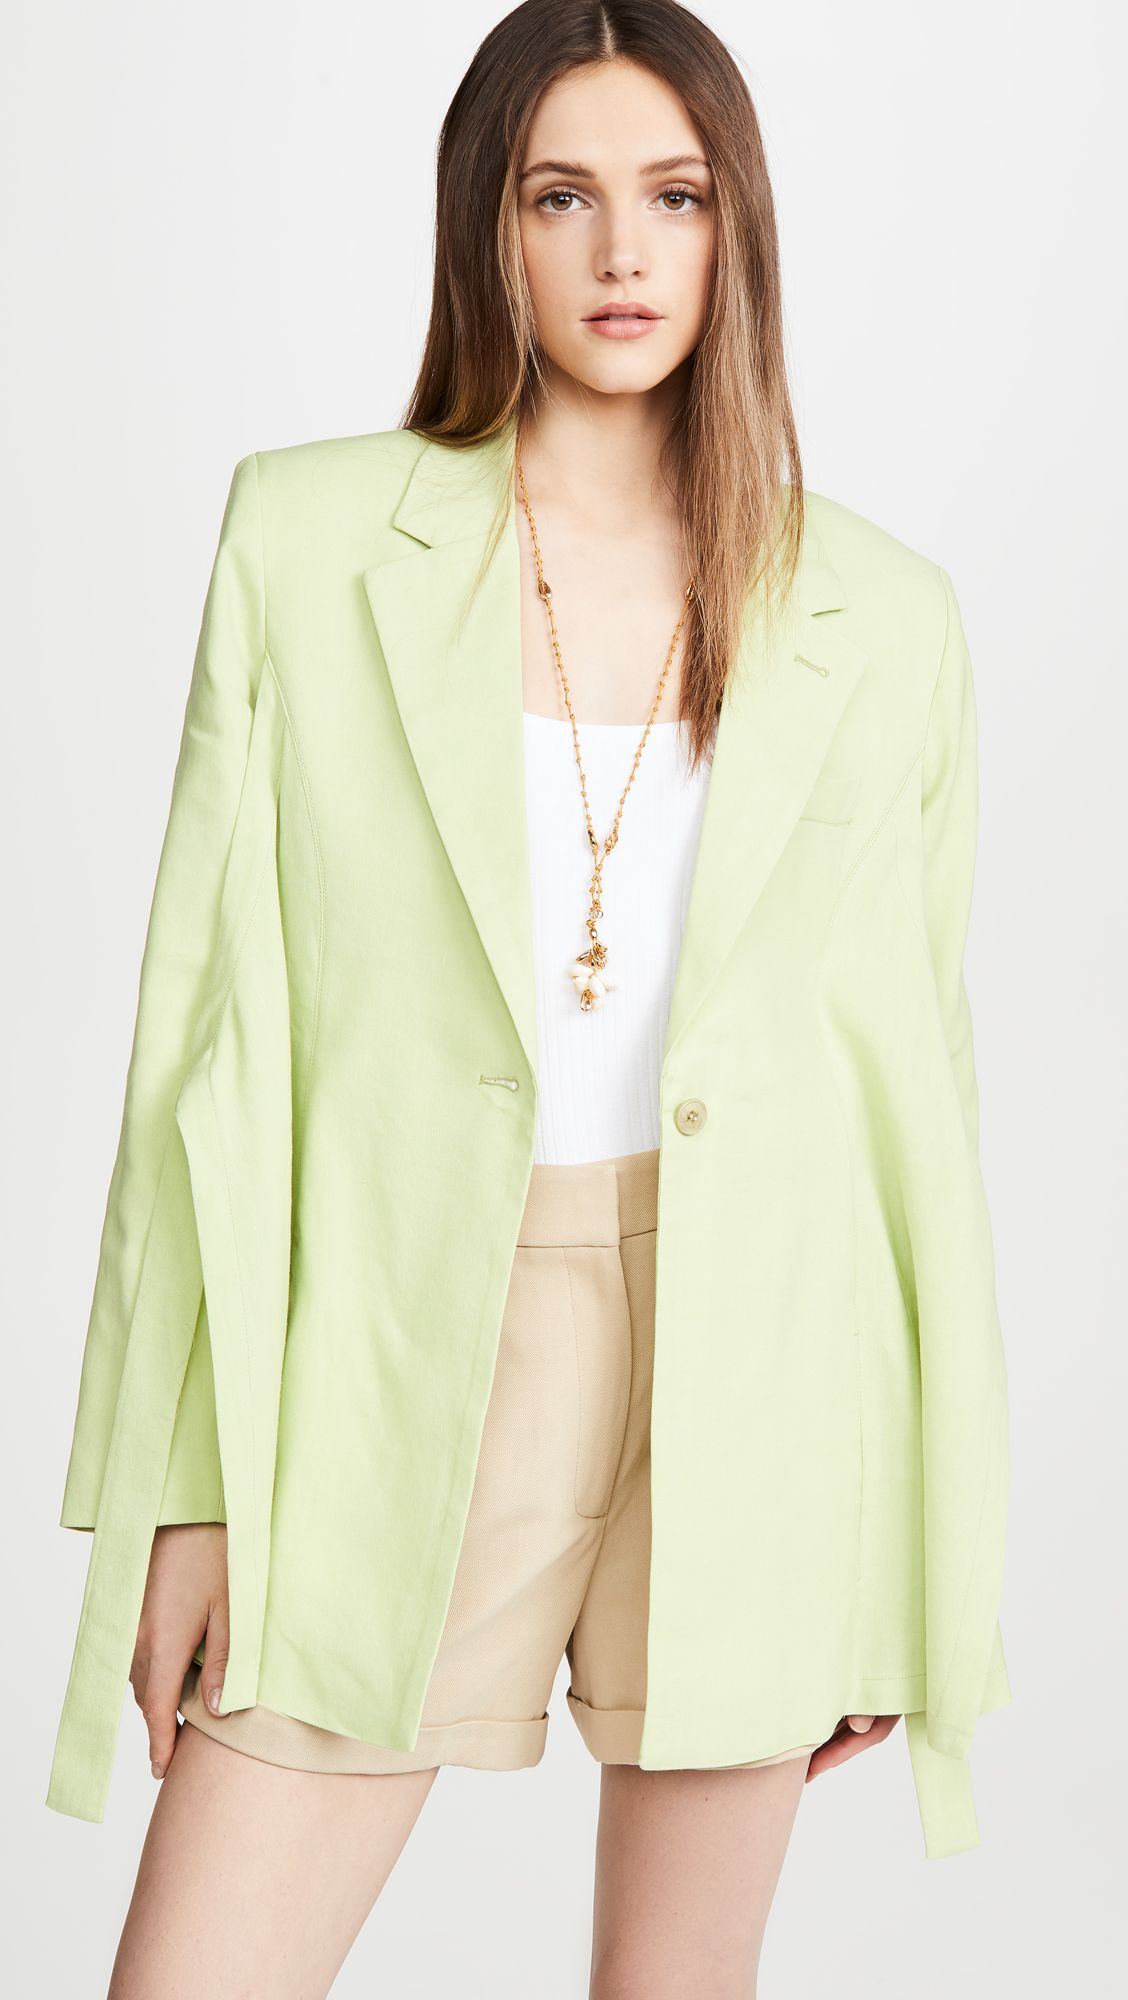 These 5 Investment Items Are Rivaling Chanel Jackets 21